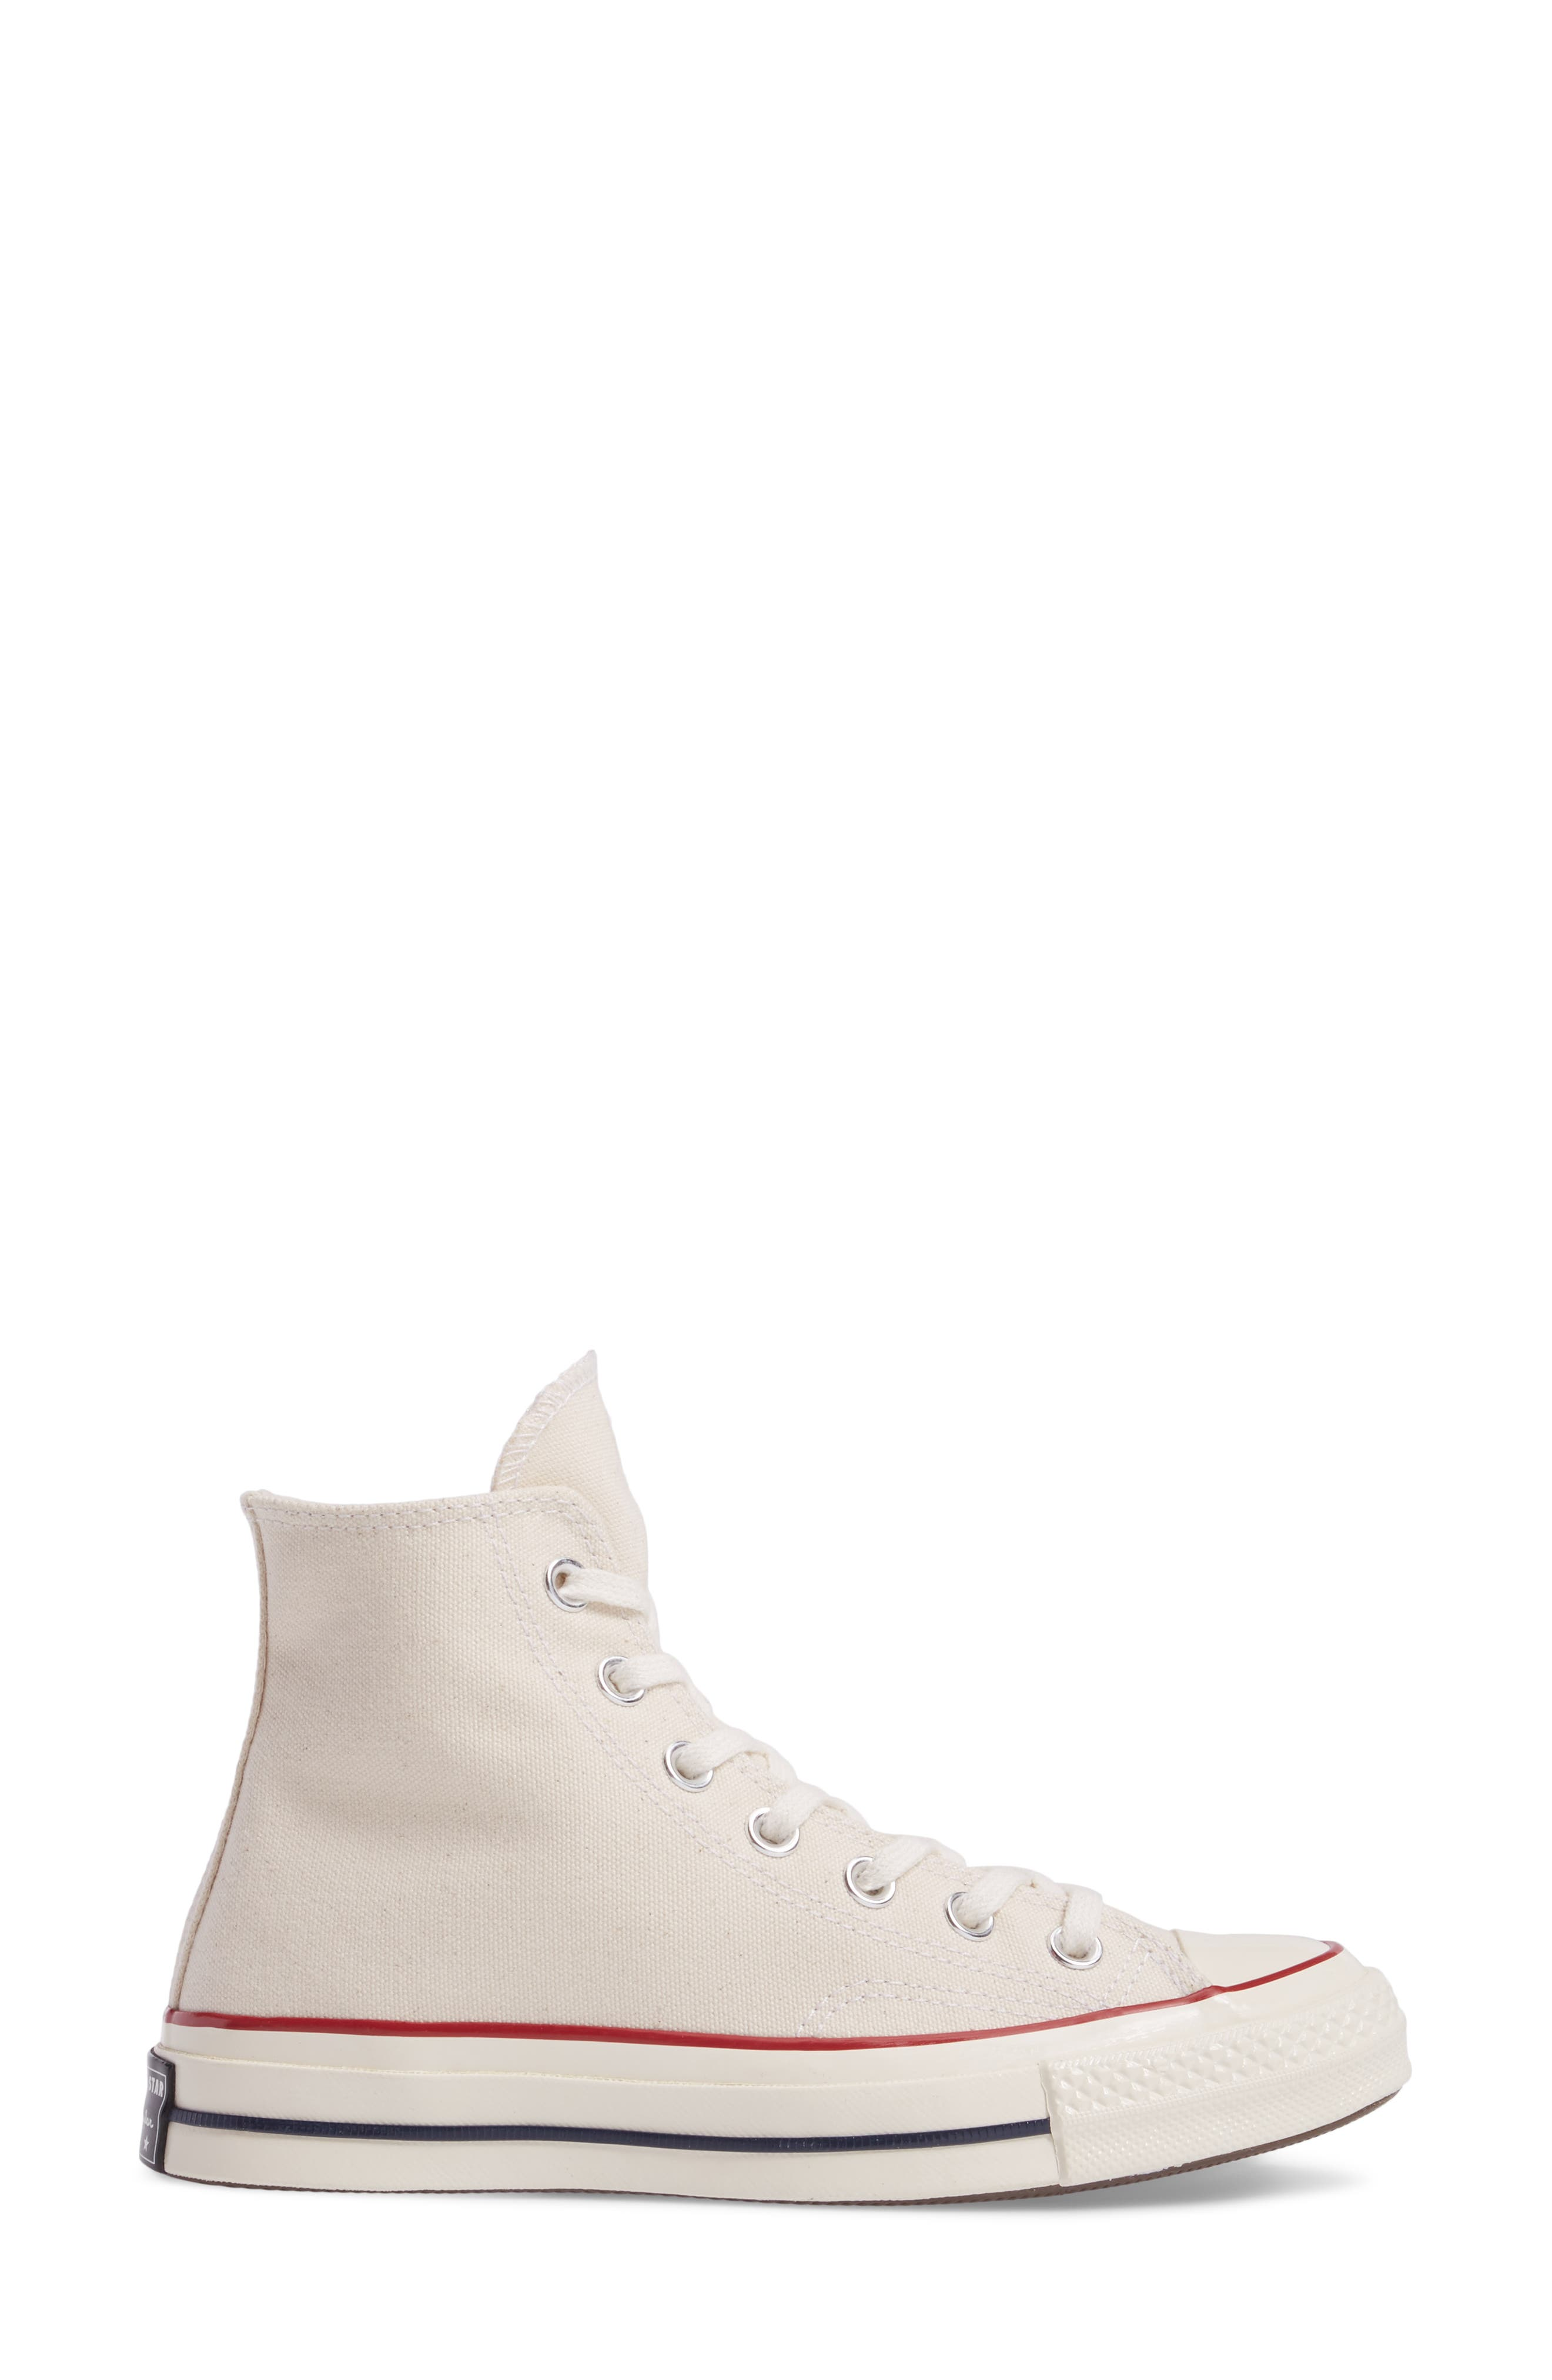 Chuck Taylor<sup>®</sup> All Star<sup>®</sup> '70 High Top Sneaker,                             Alternate thumbnail 3, color,                             PARCHMENT